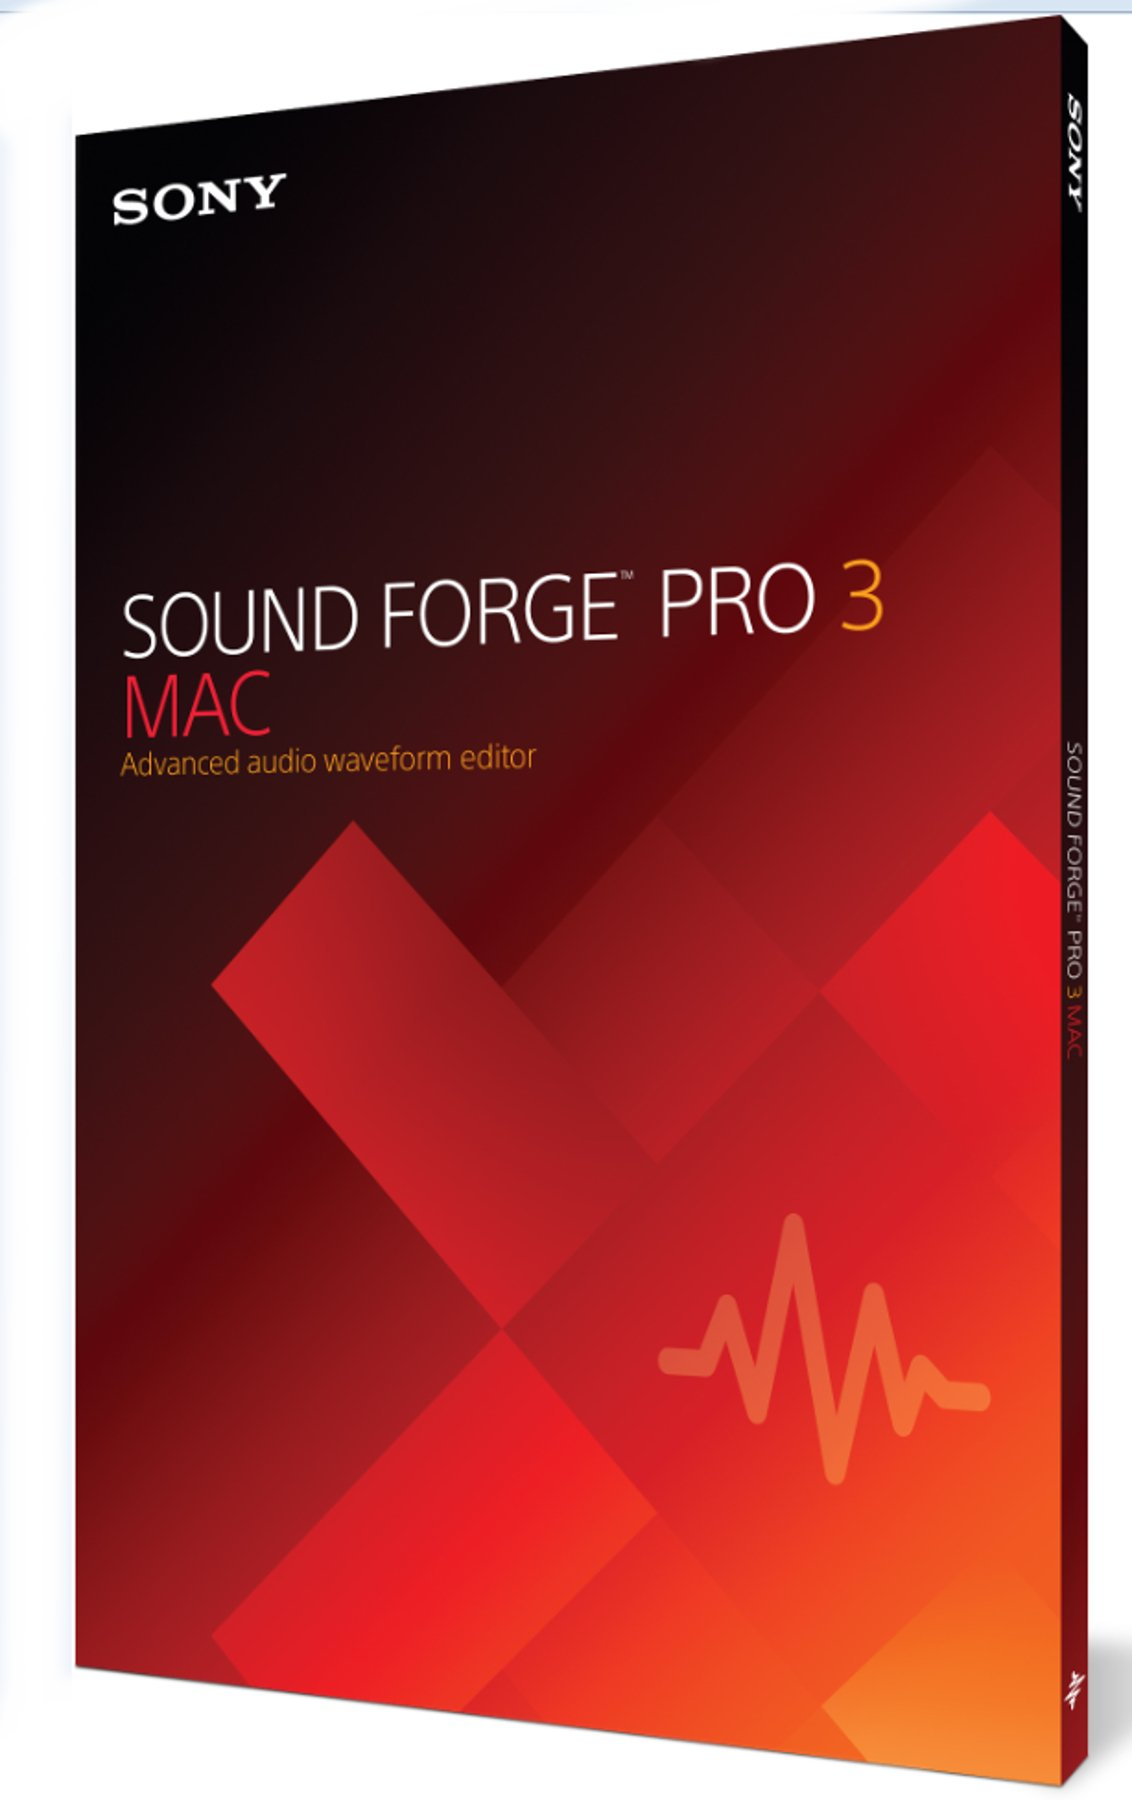 Advanced Audio Waveform Editor, Mac